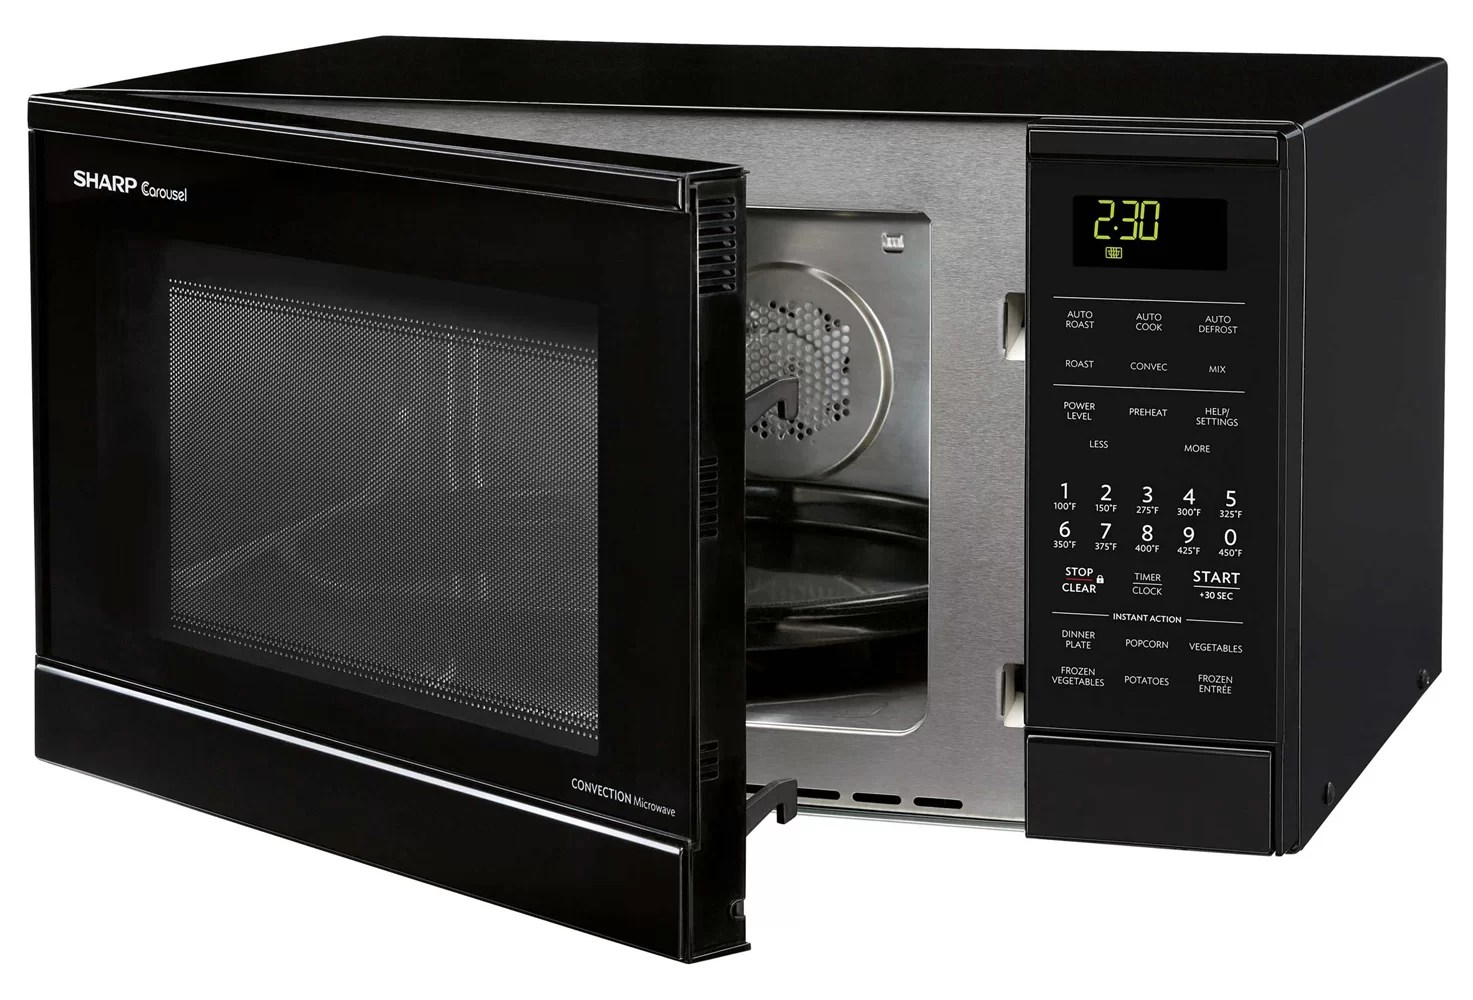 Countertop Microwave Convection Oven Combo Sharp 9 Cu Ft 900w Countertop Microwave Black Ebay